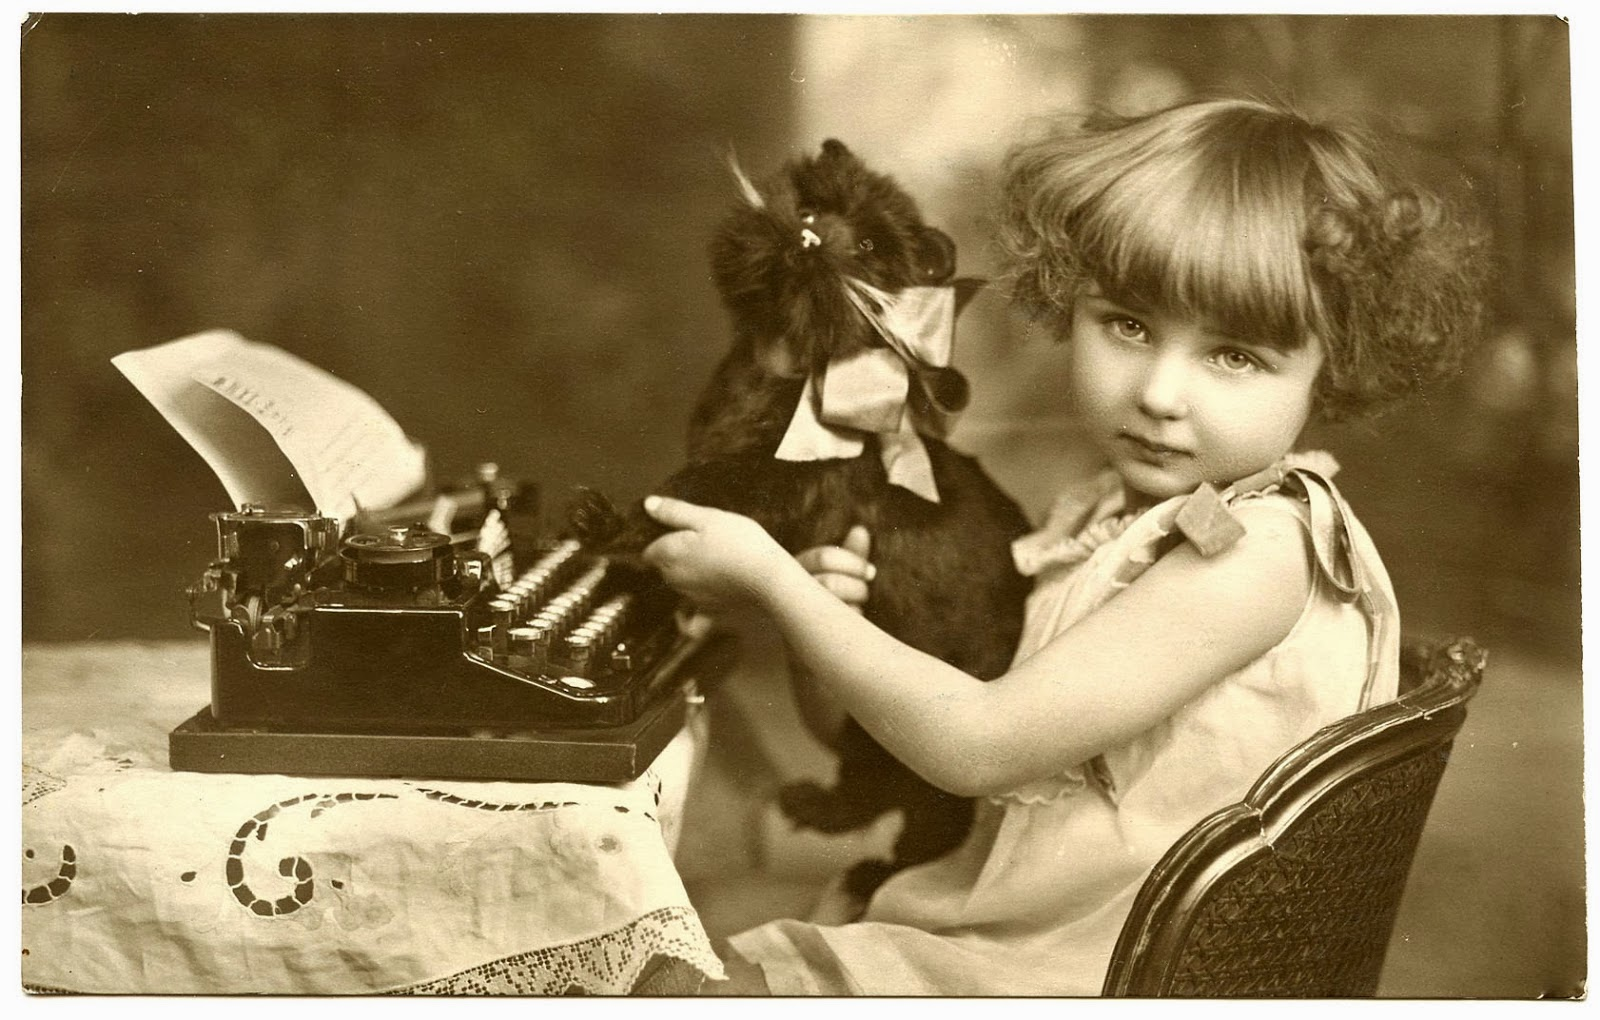 Vintage picture of young girl with toy cat and typewriter